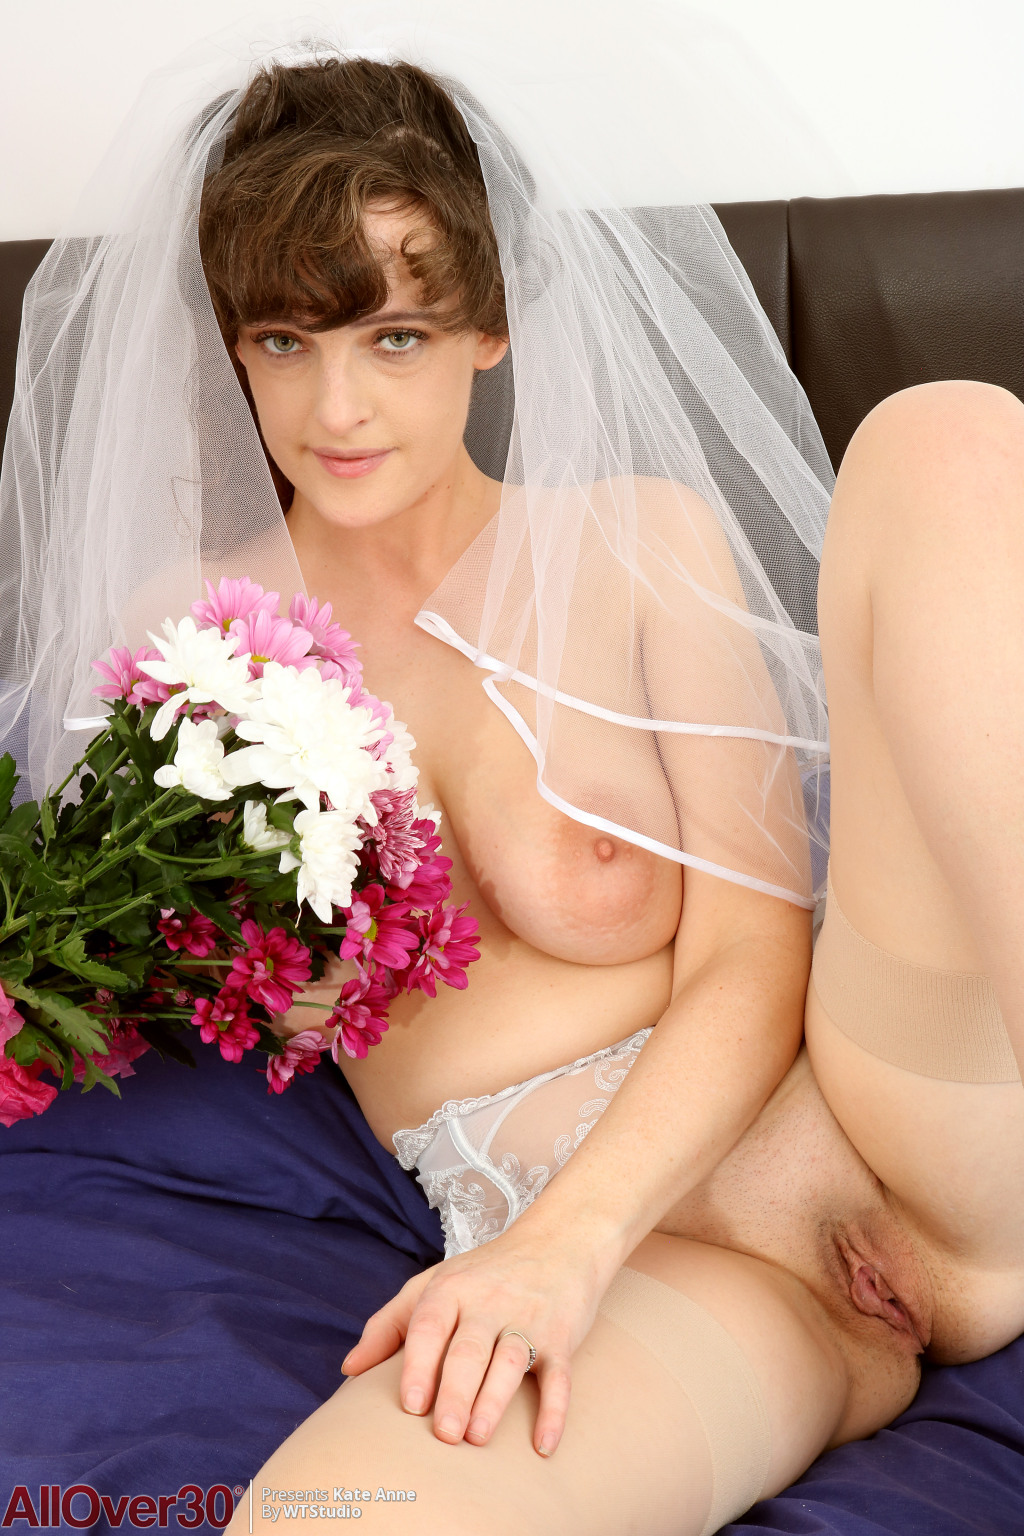 kate-anne-busty-bride-13